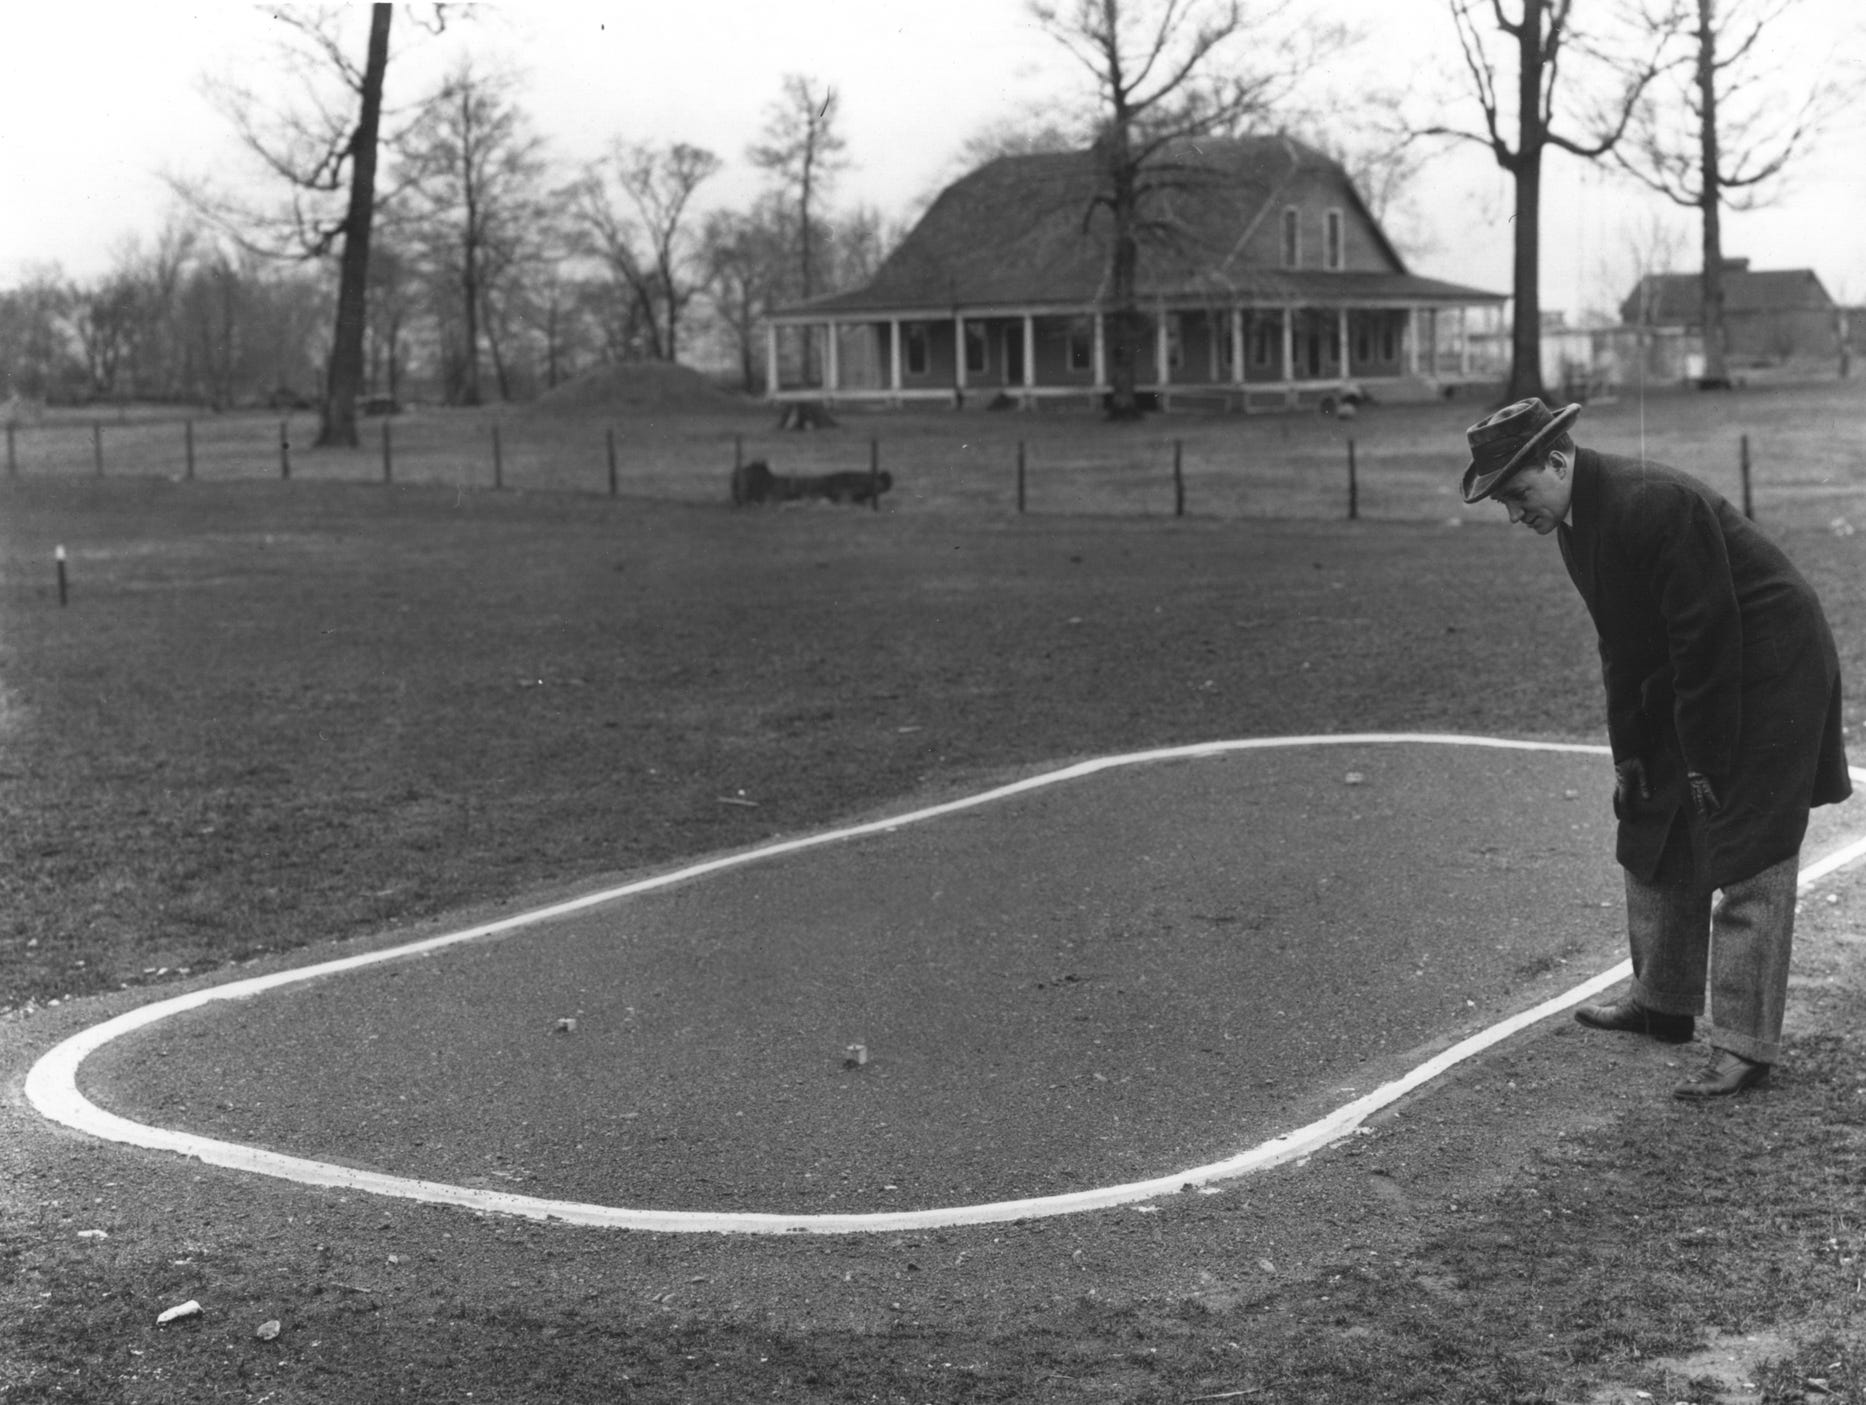 Lewis Strang surveys the 1909 layout of the Indianapolis Motor Speedway. Strang became the first entrant in the Indianapolis 500 on Oct. 22, 1910, which was significant because that determined the starting lineup for the inaugural race.